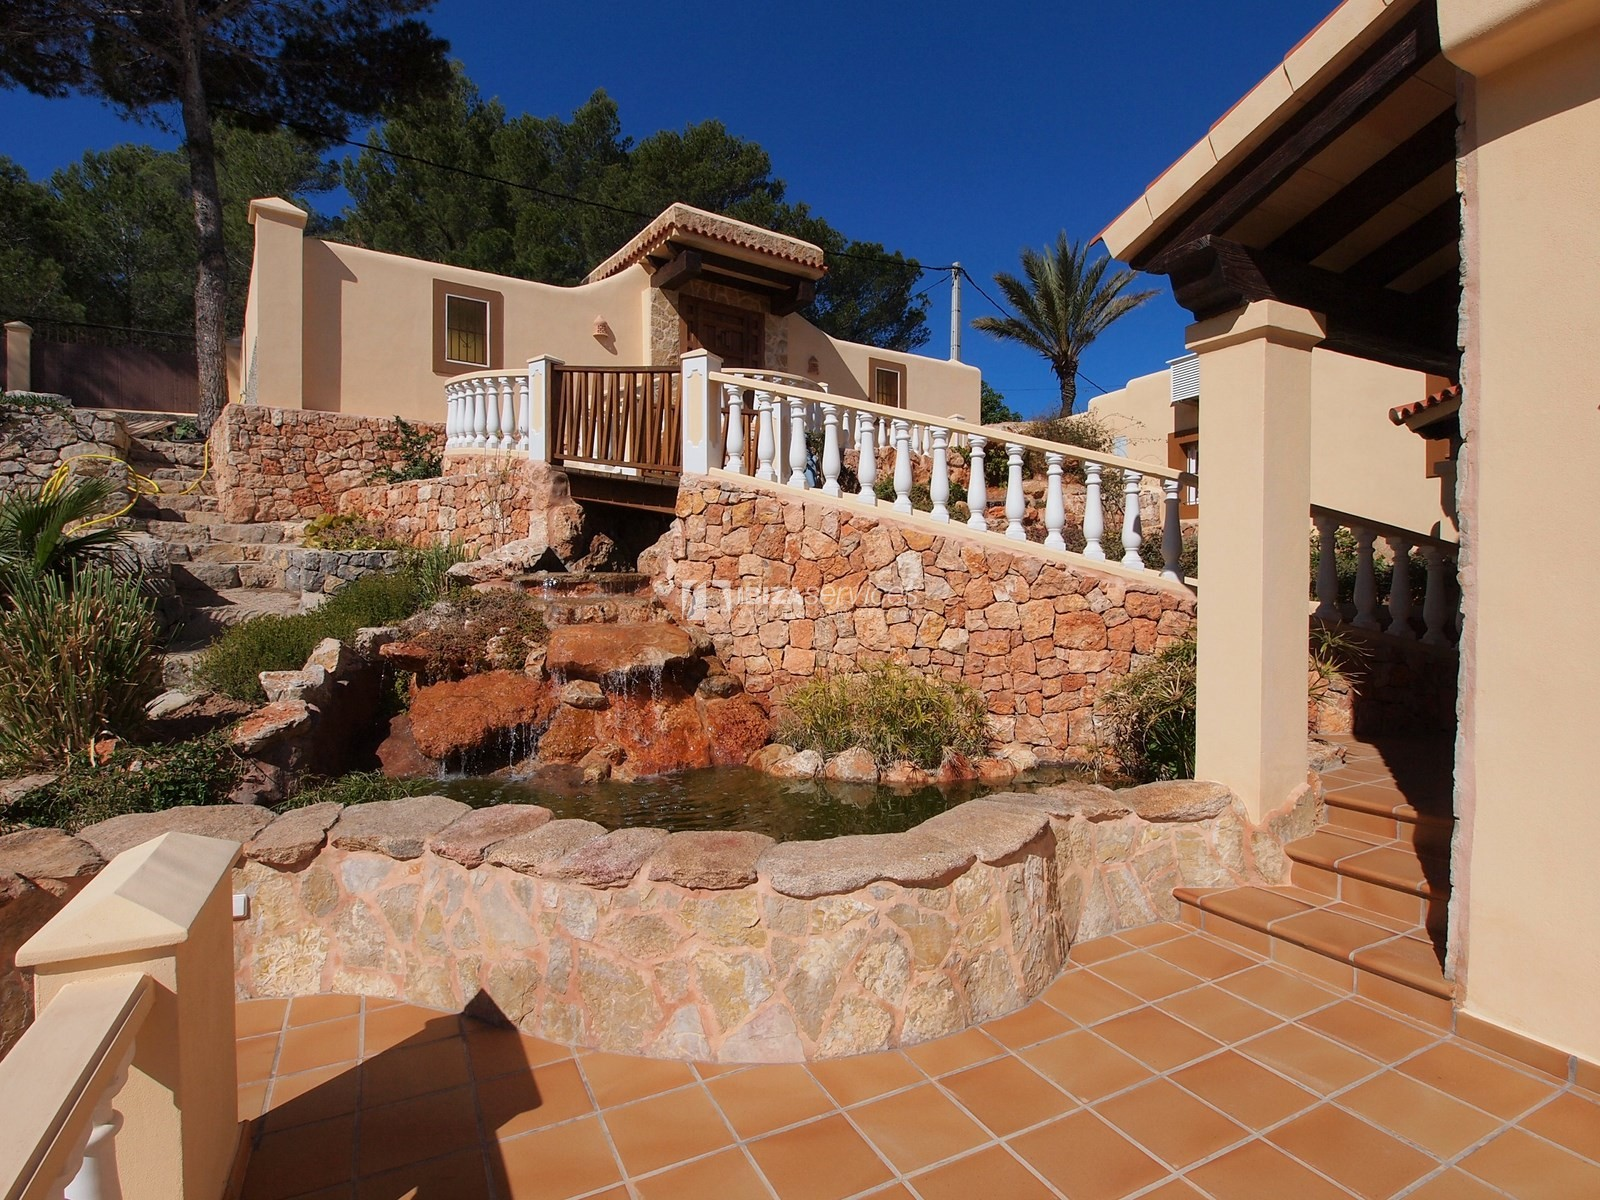 7 bedroom villa overlooking the sea Cala Moli perspectiva 4